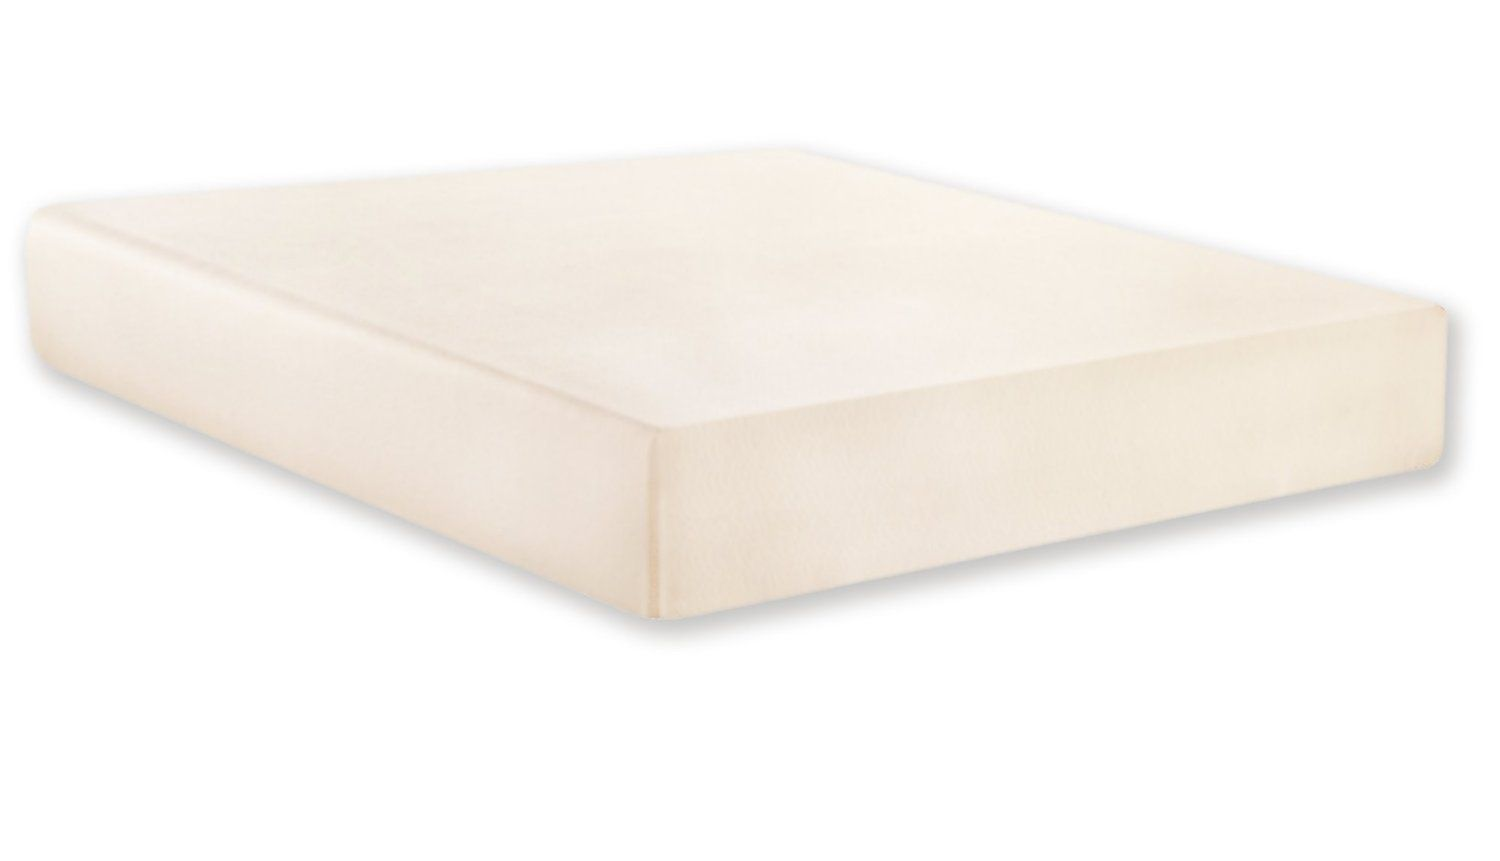 Signature Sleep Memoir 8-Inch Memory Foam Mattress with CertiPUR-US Certified Foam, Queen. Available in Multiple Sizes